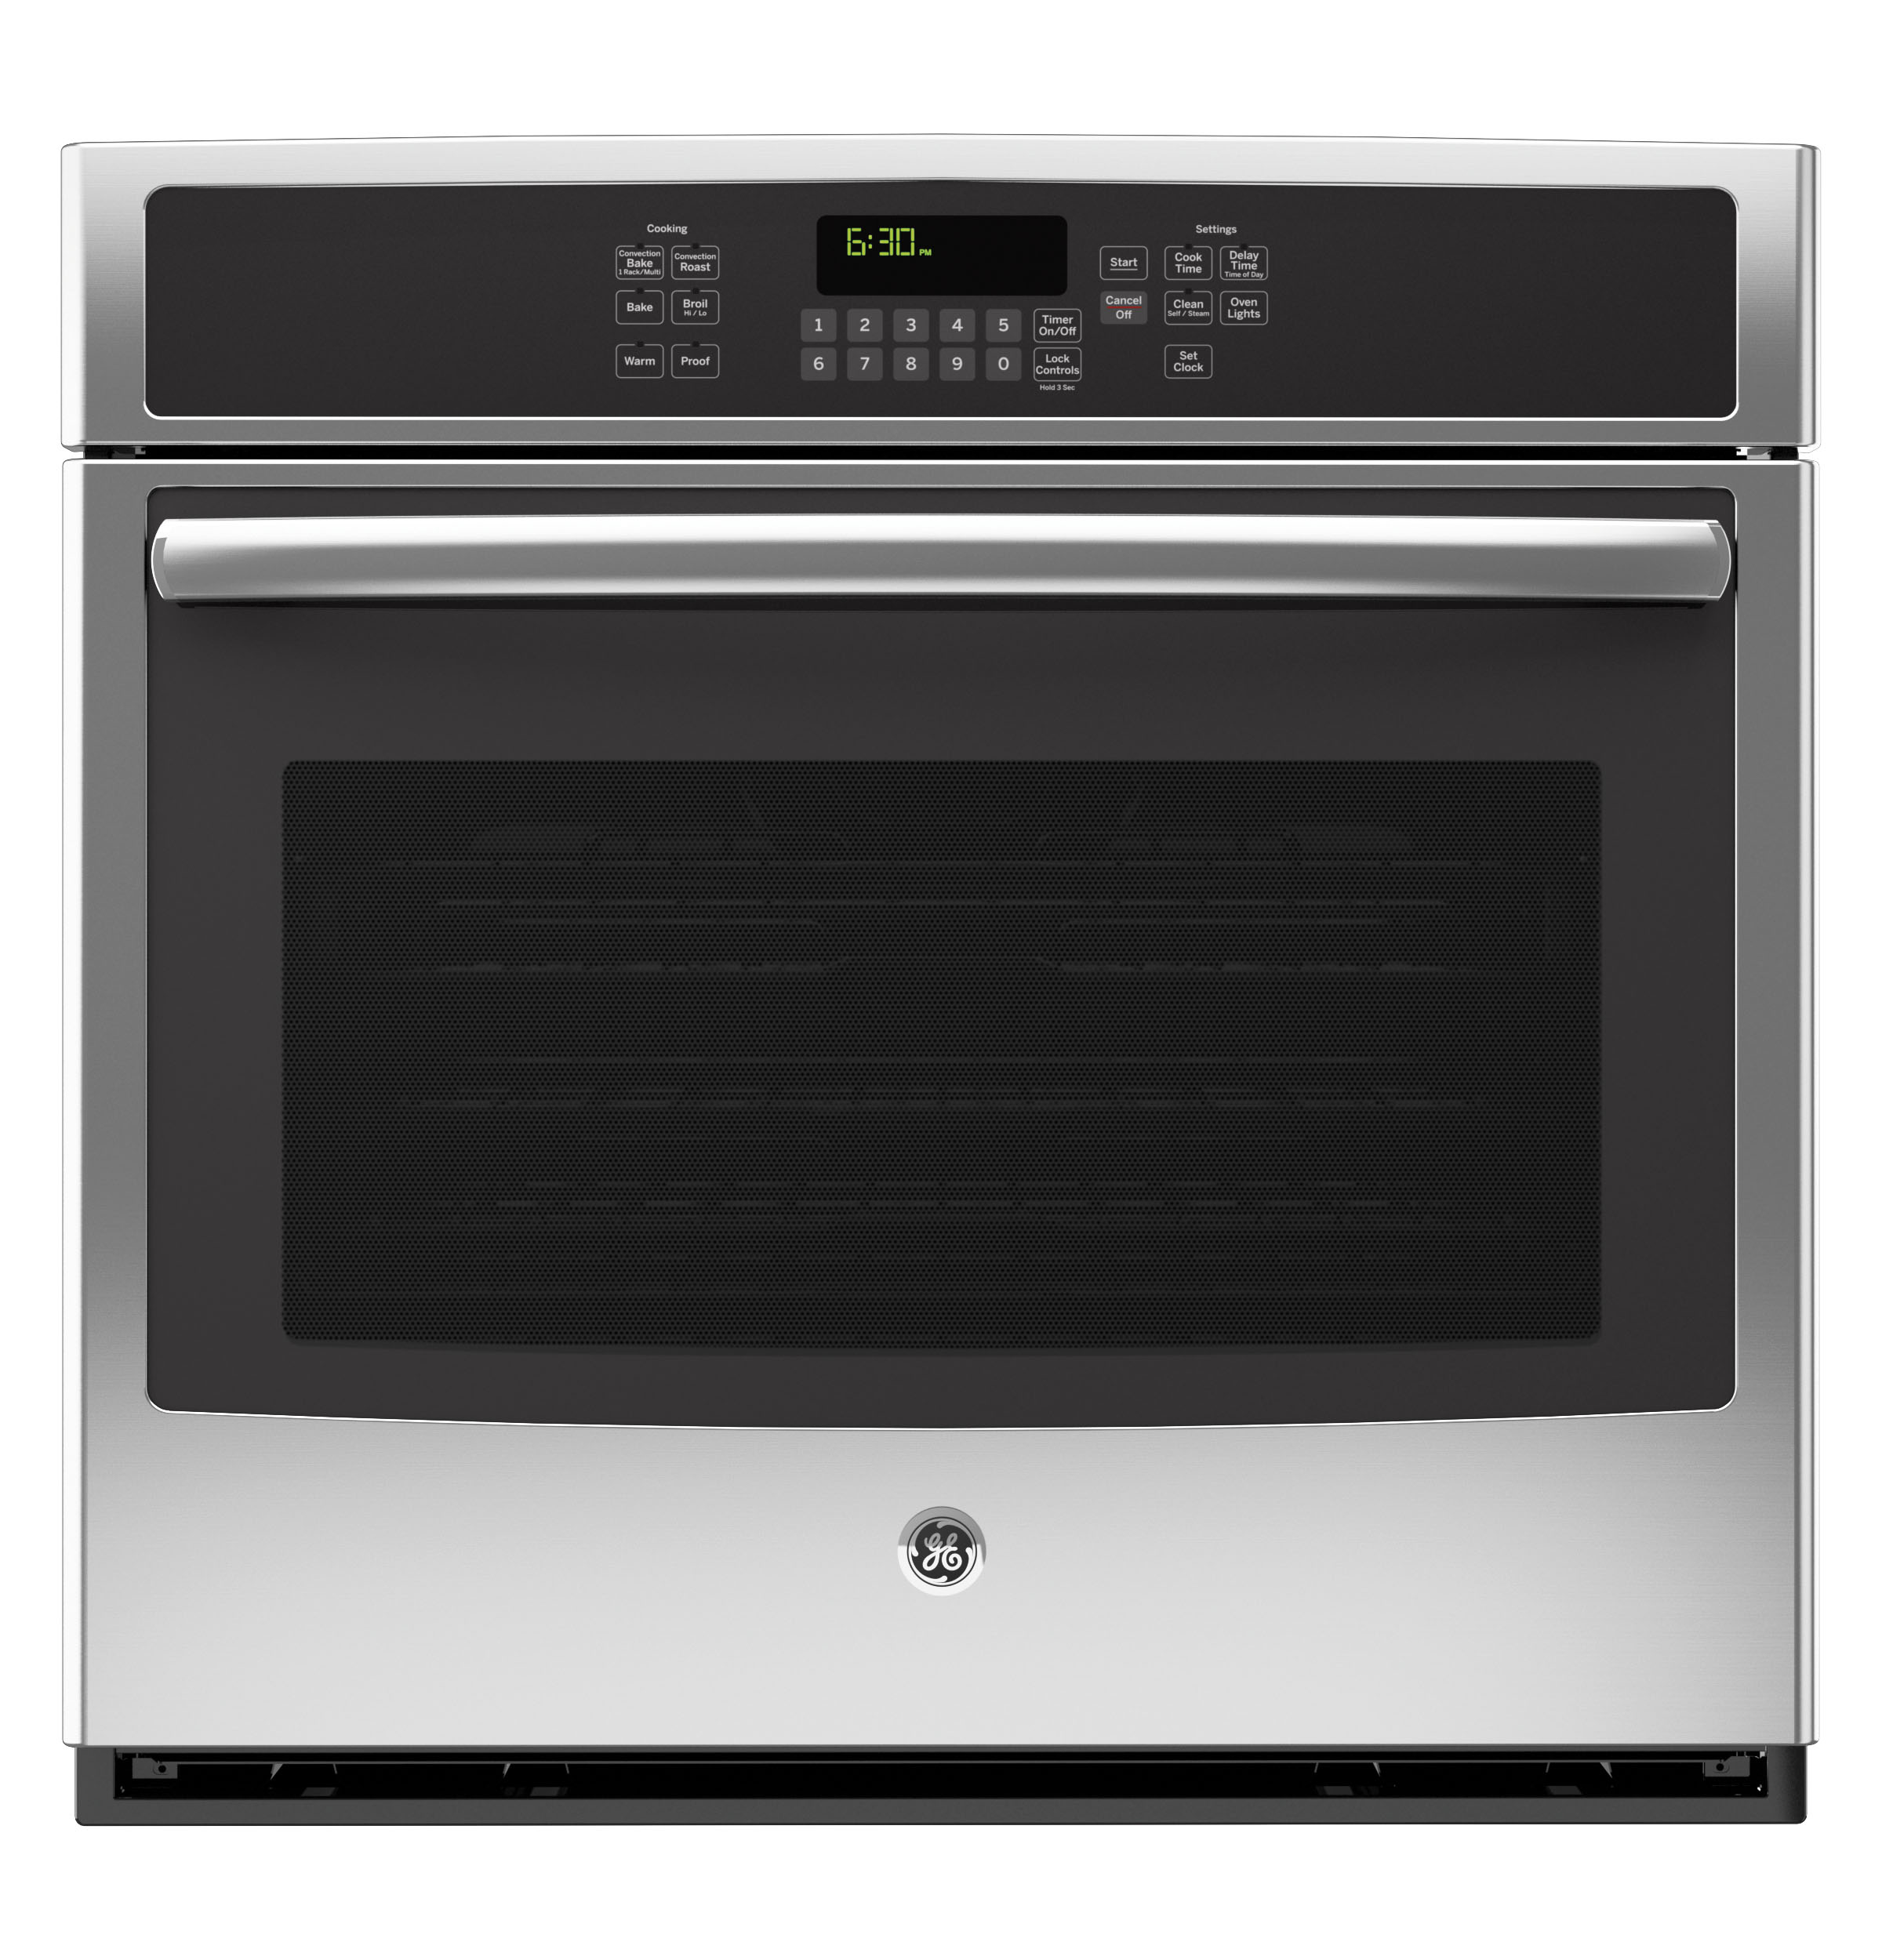 Ge 30 Built In Single Convection Wall Oven Jt5000sfss Spacemaker Microwave Wiring Diagram Product Image